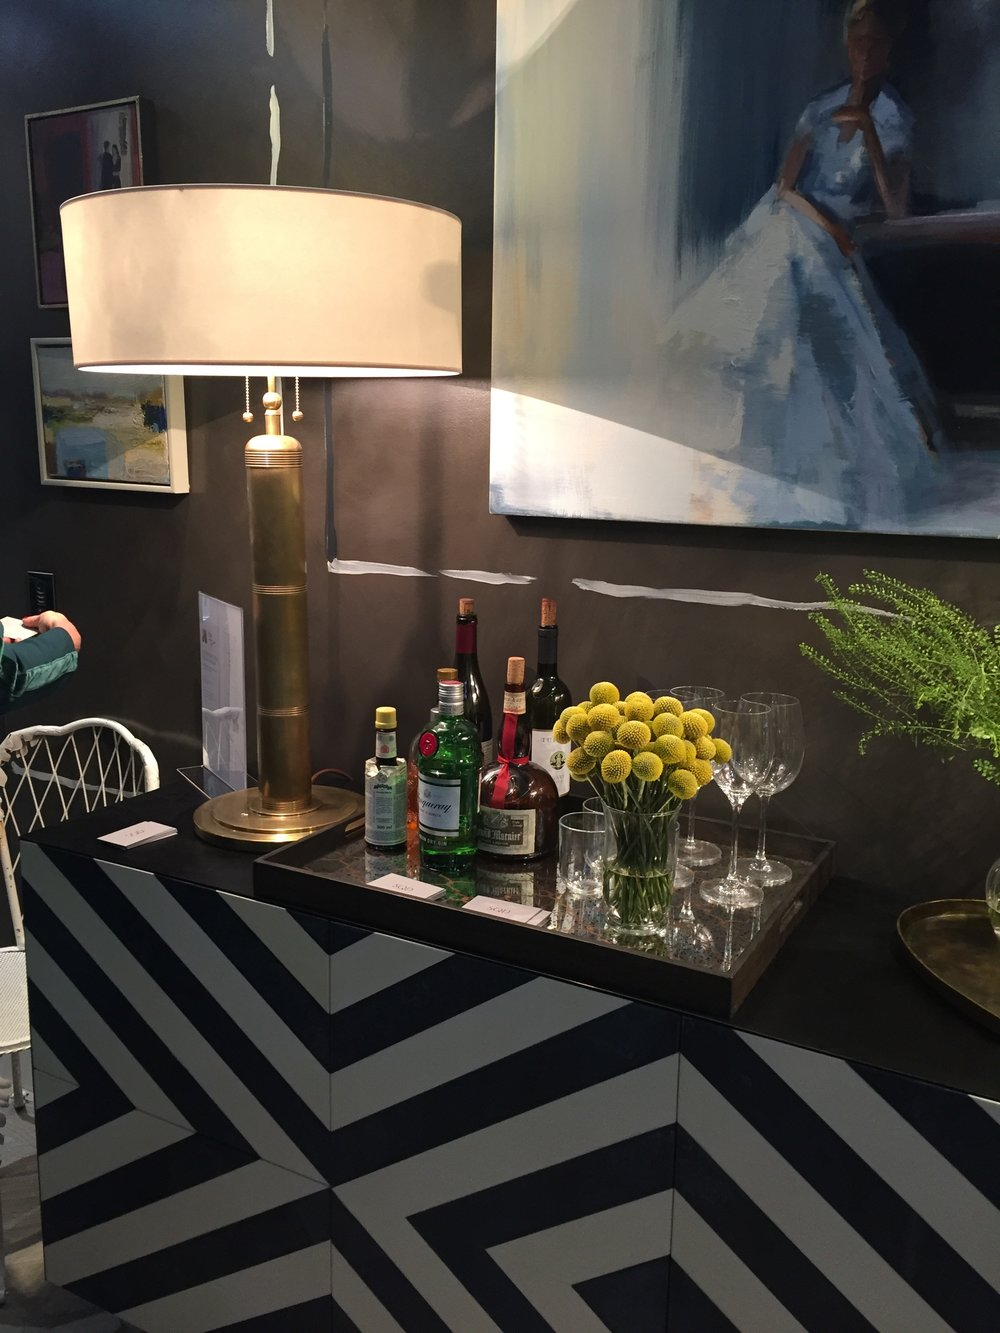 Holiday House London, An Interior Design Event With A Cause - Nocturne in Grey & Silver minibar by Studio QD and Nicky Haslam .JPG